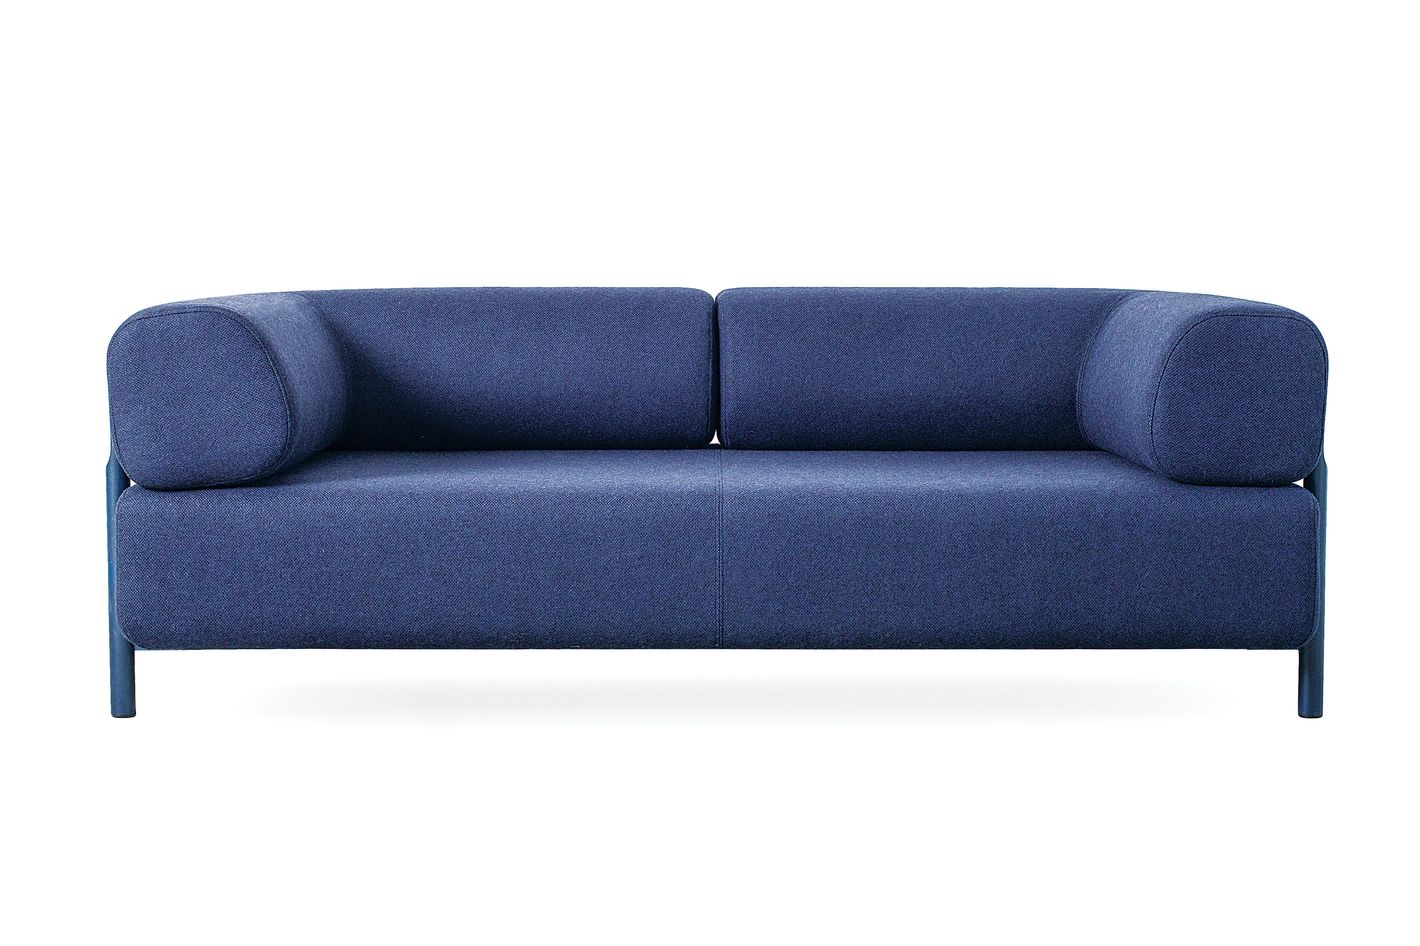 Hem Palo Two-Seater Sofa